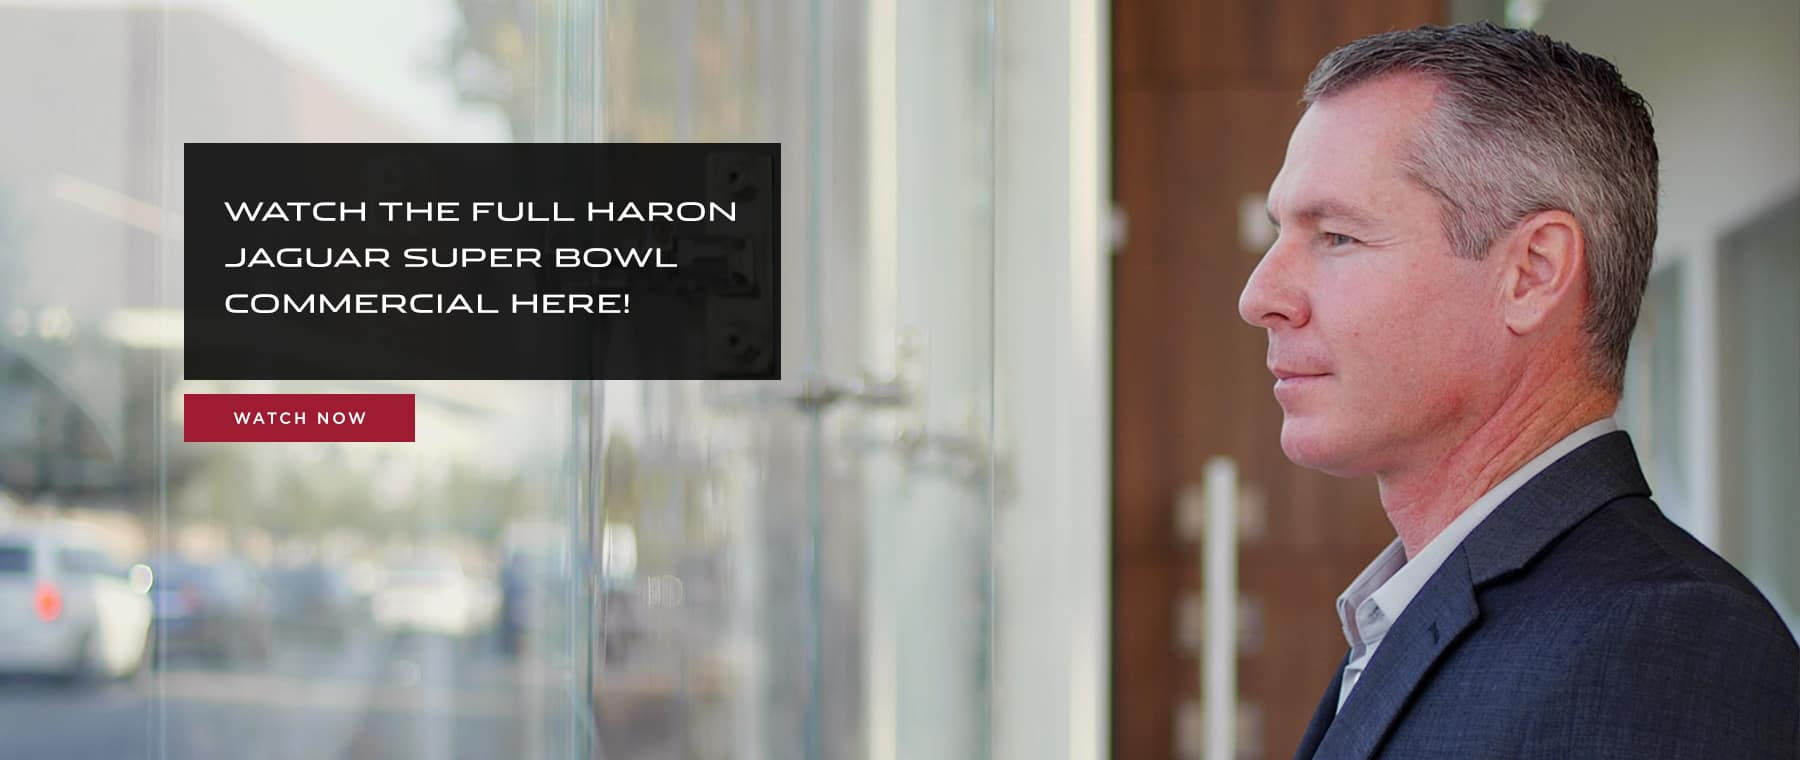 Haron Jaguar Super Bowl Commercial